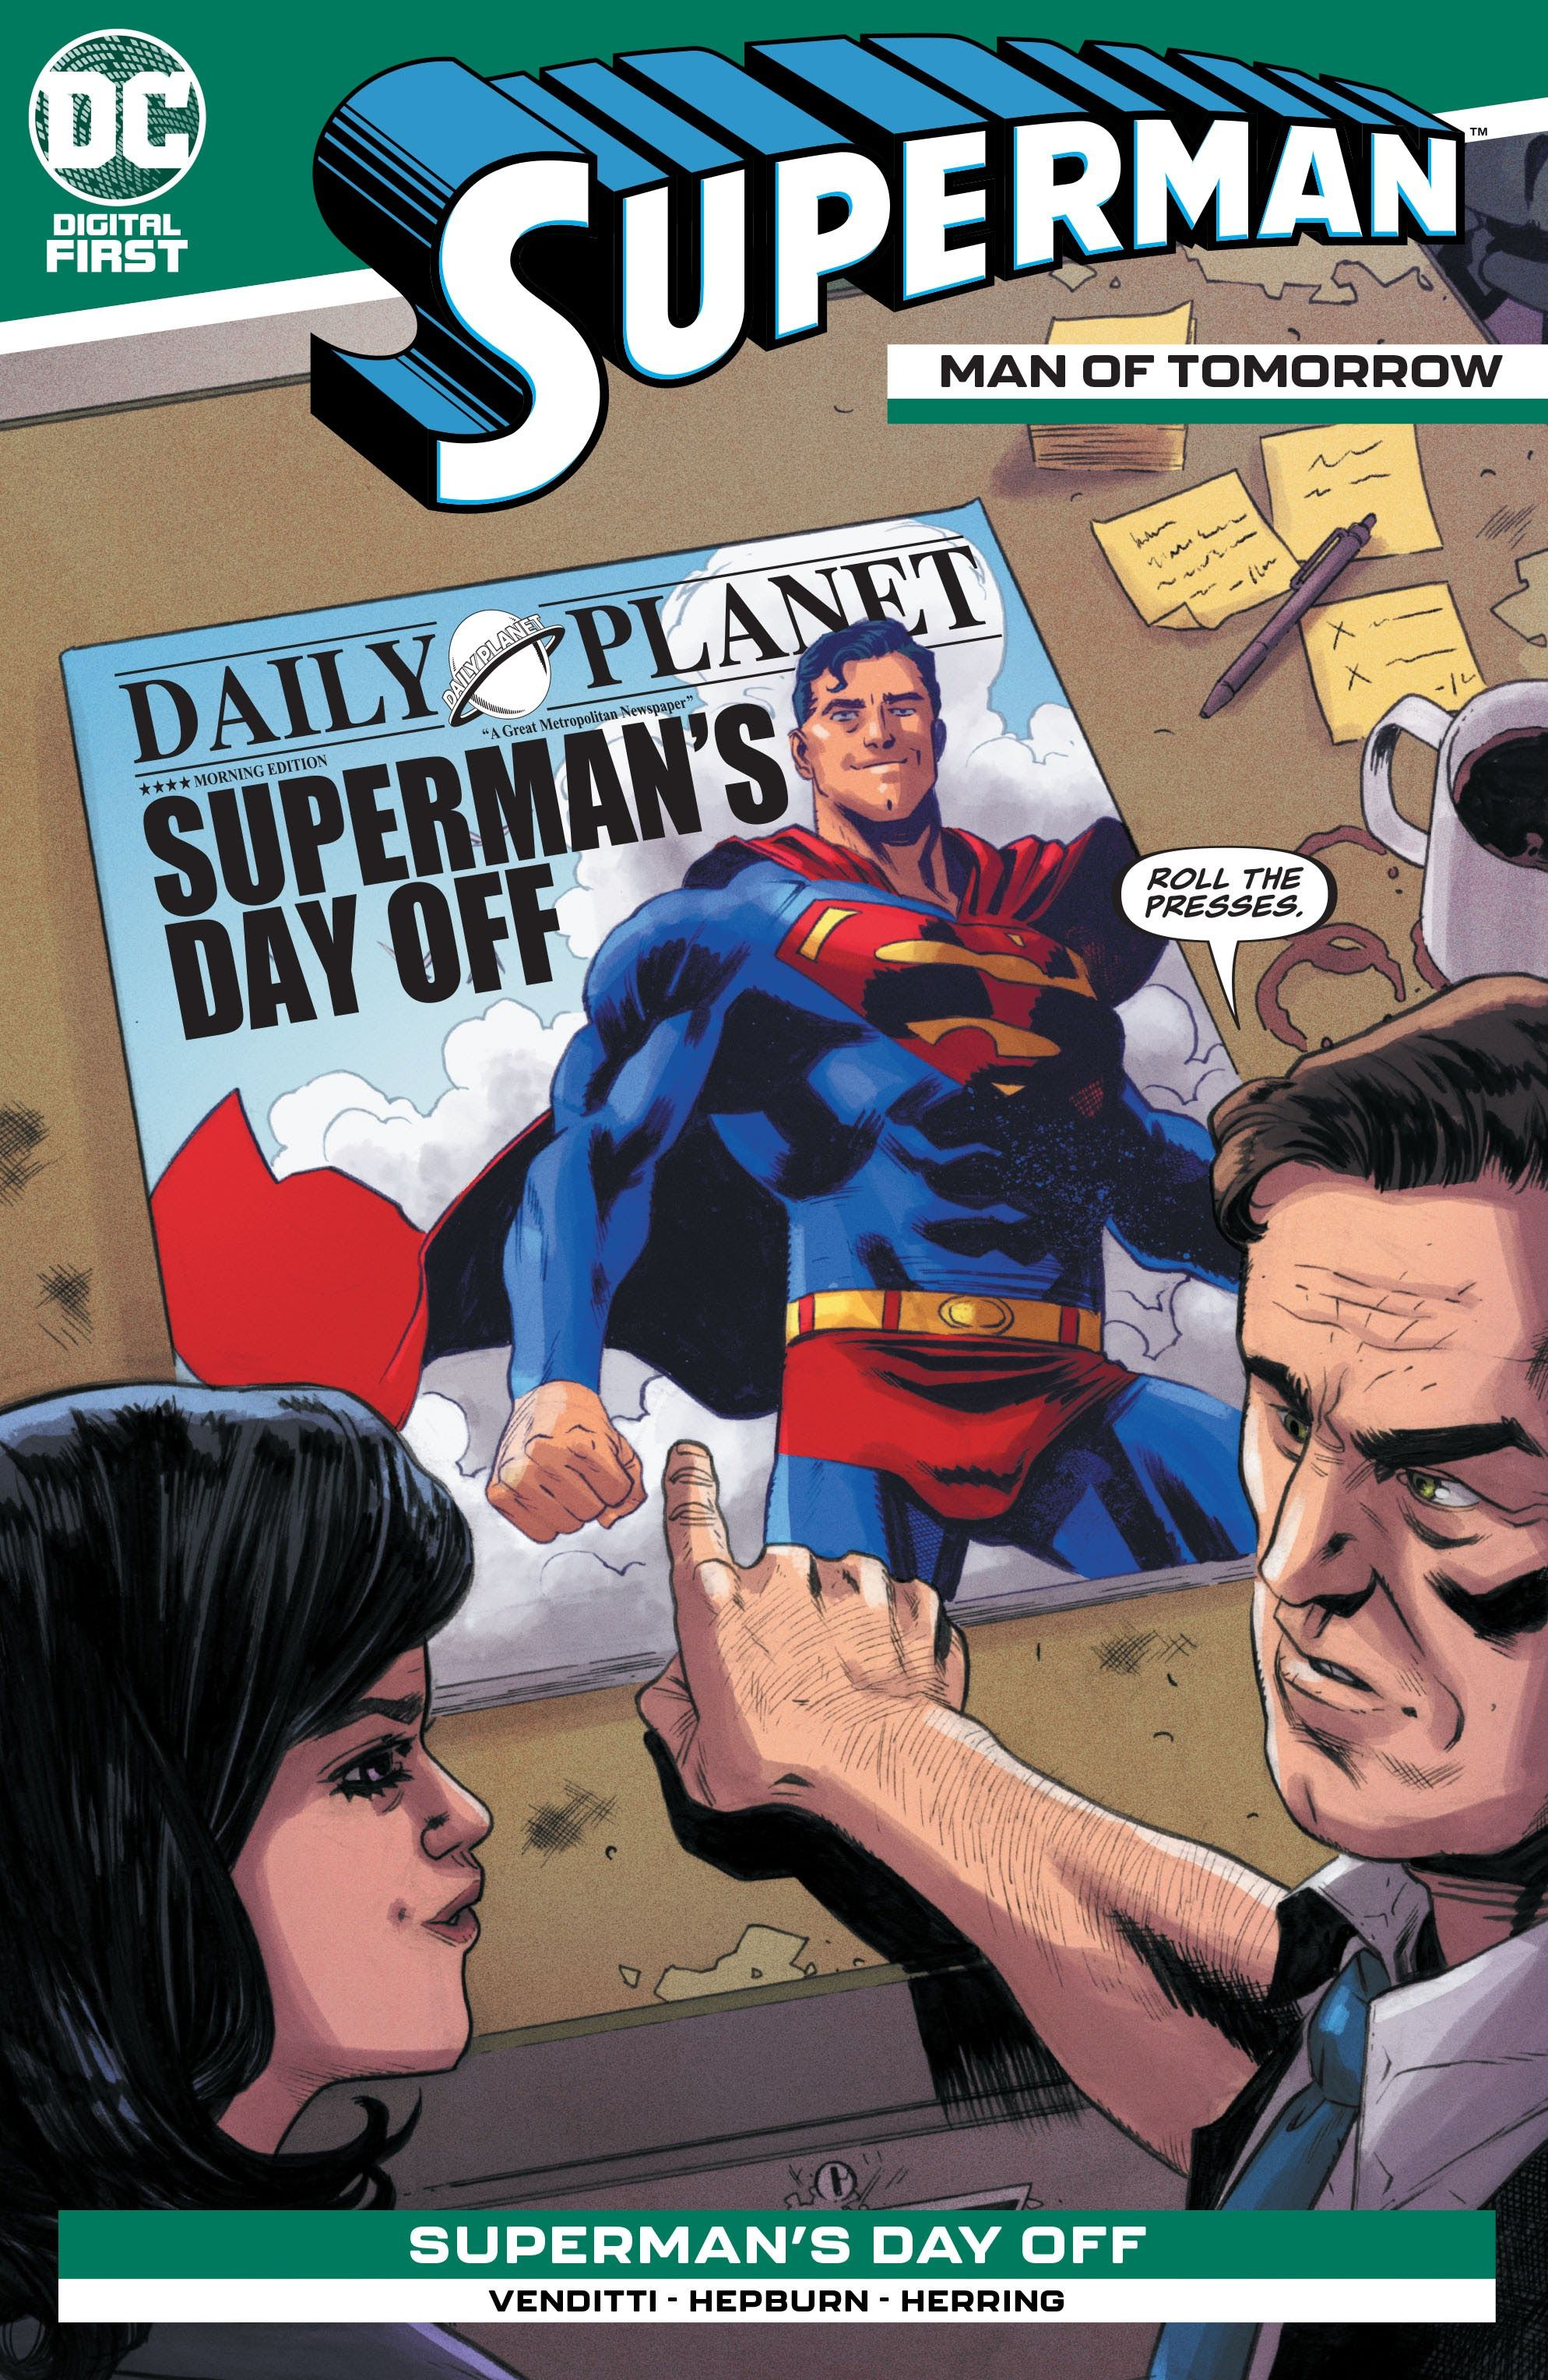 Read Superman Man Of Tomorrow Issue 12 Online Comicpunch Net Superman First Superman Superman News